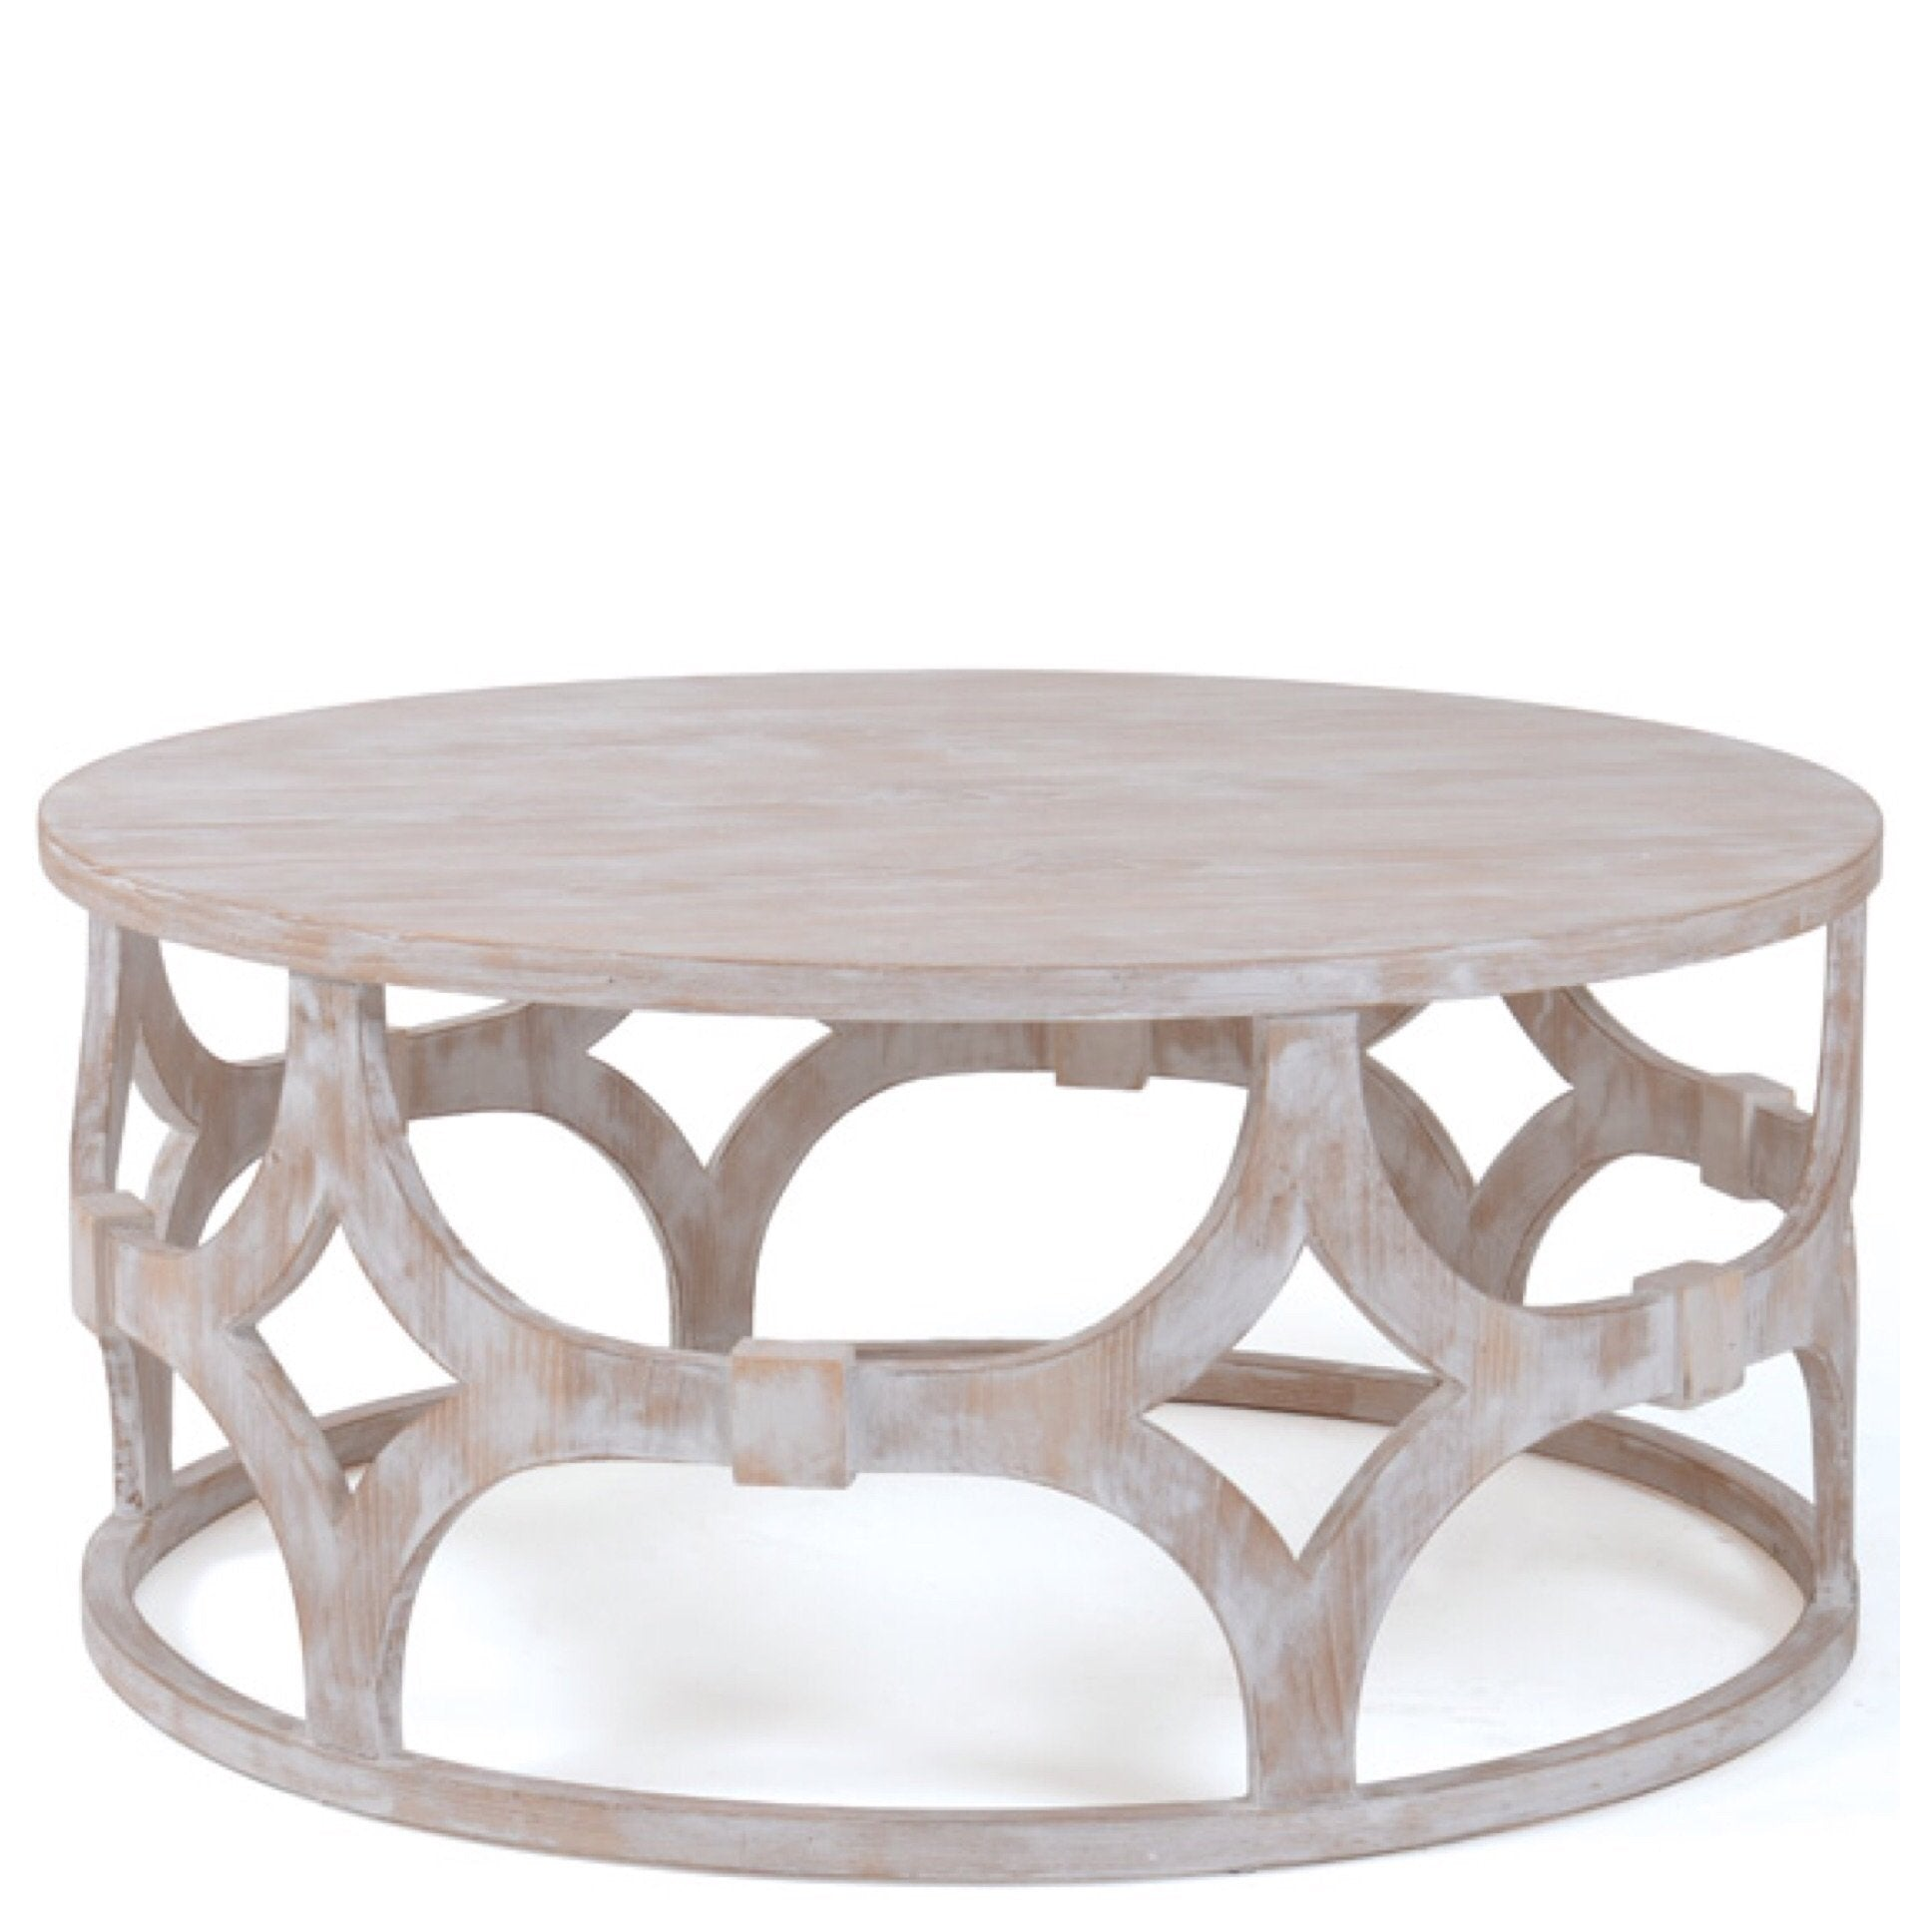 Fretwork Coffee Table.My Sister S Coffee Table